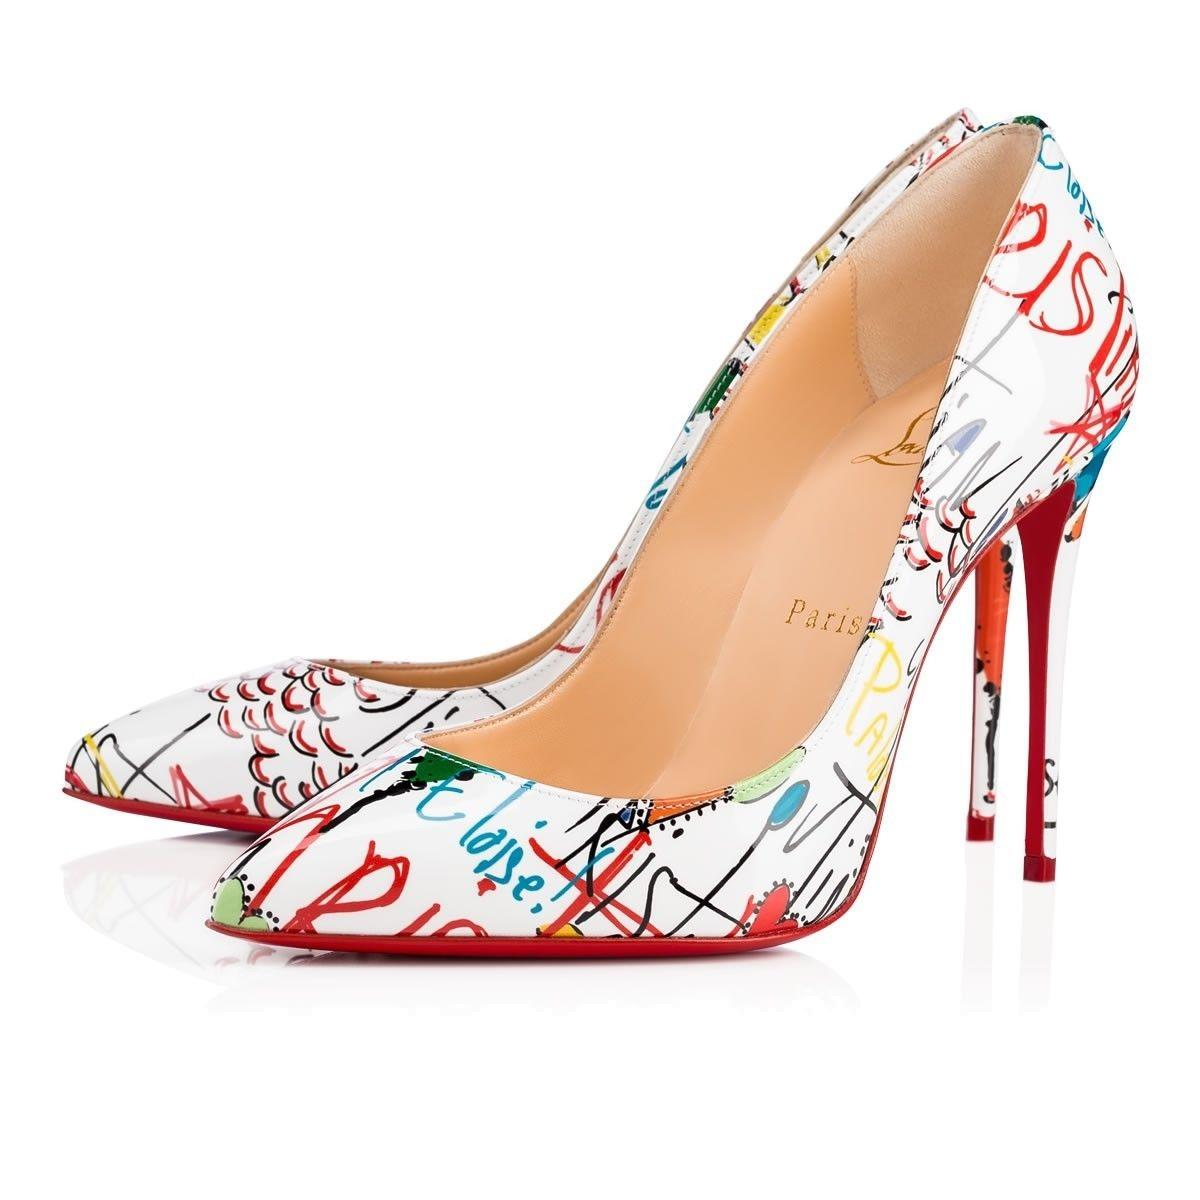 afd5f0132753 Christian Louboutin White Pigalle Follies 100 Red Loubitag Loubitag  Loubitag Graffiti Patent Leather Heel Pumps Size